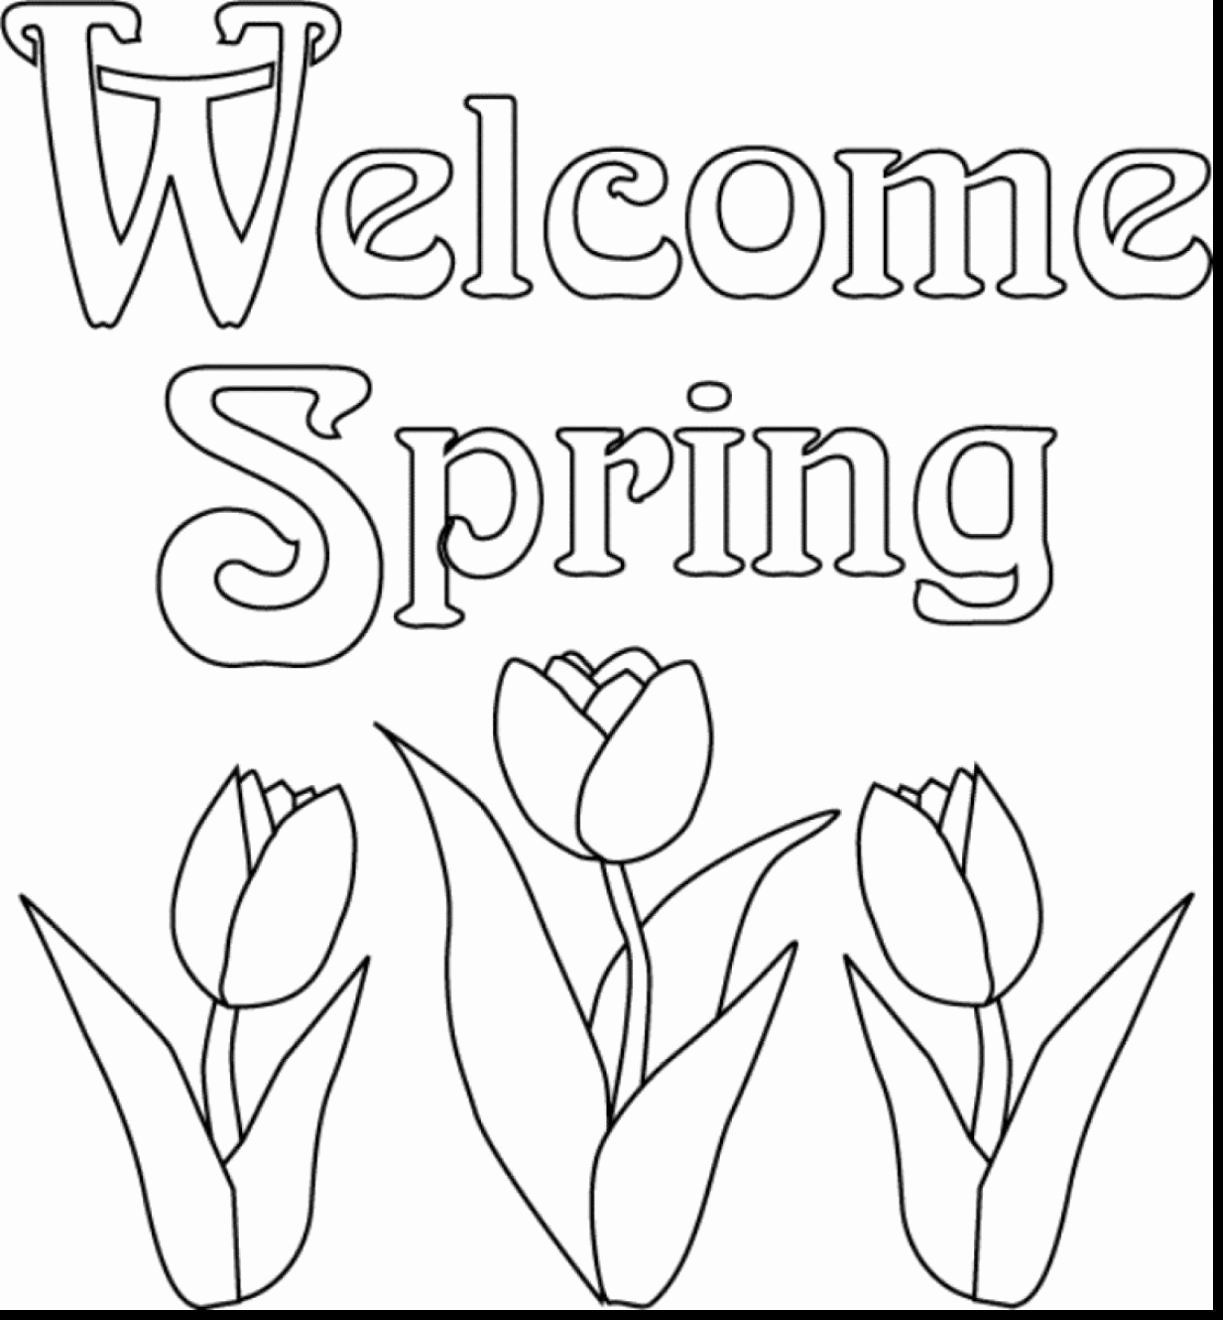 Spring Break Coloring Pages Beautiful Spring Break Coloring Pages At Getcolorings In 2020 Spring Coloring Sheets Spring Coloring Pages Coloring Pages